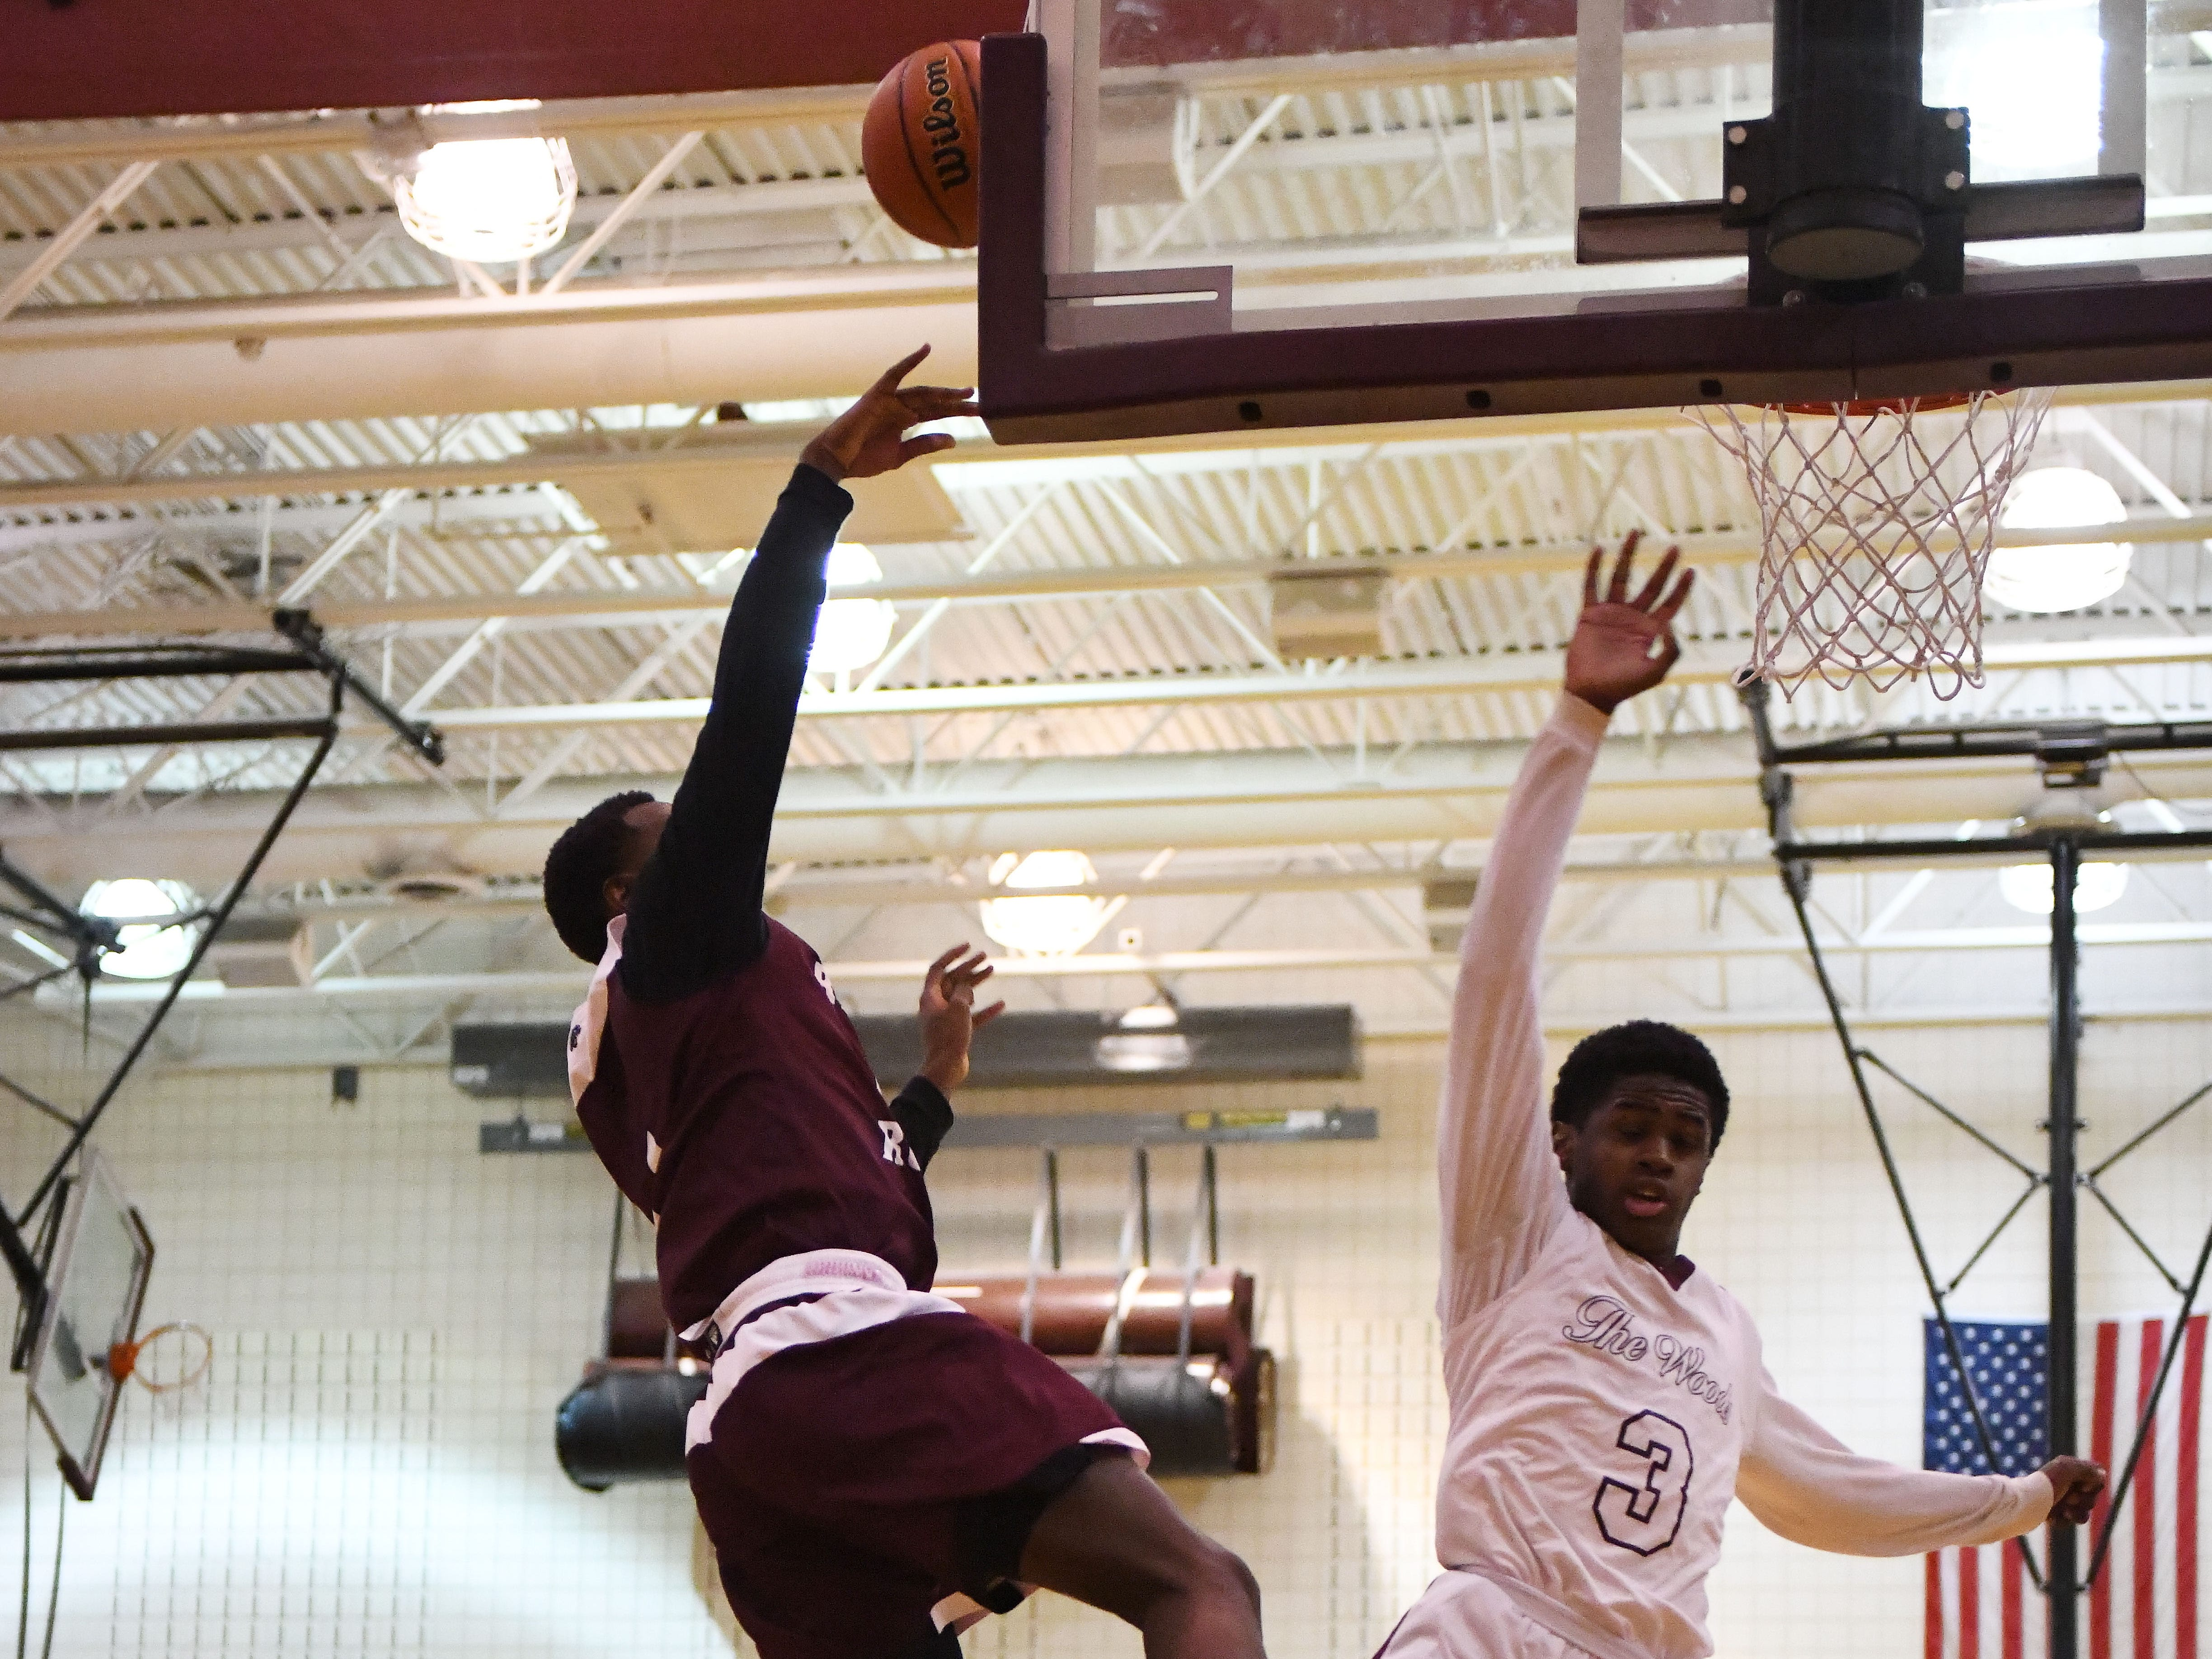 River Rouge's Donavon Freeman is fouled driving to the basket by Harper Woods' Curtis Jackson in the second half.